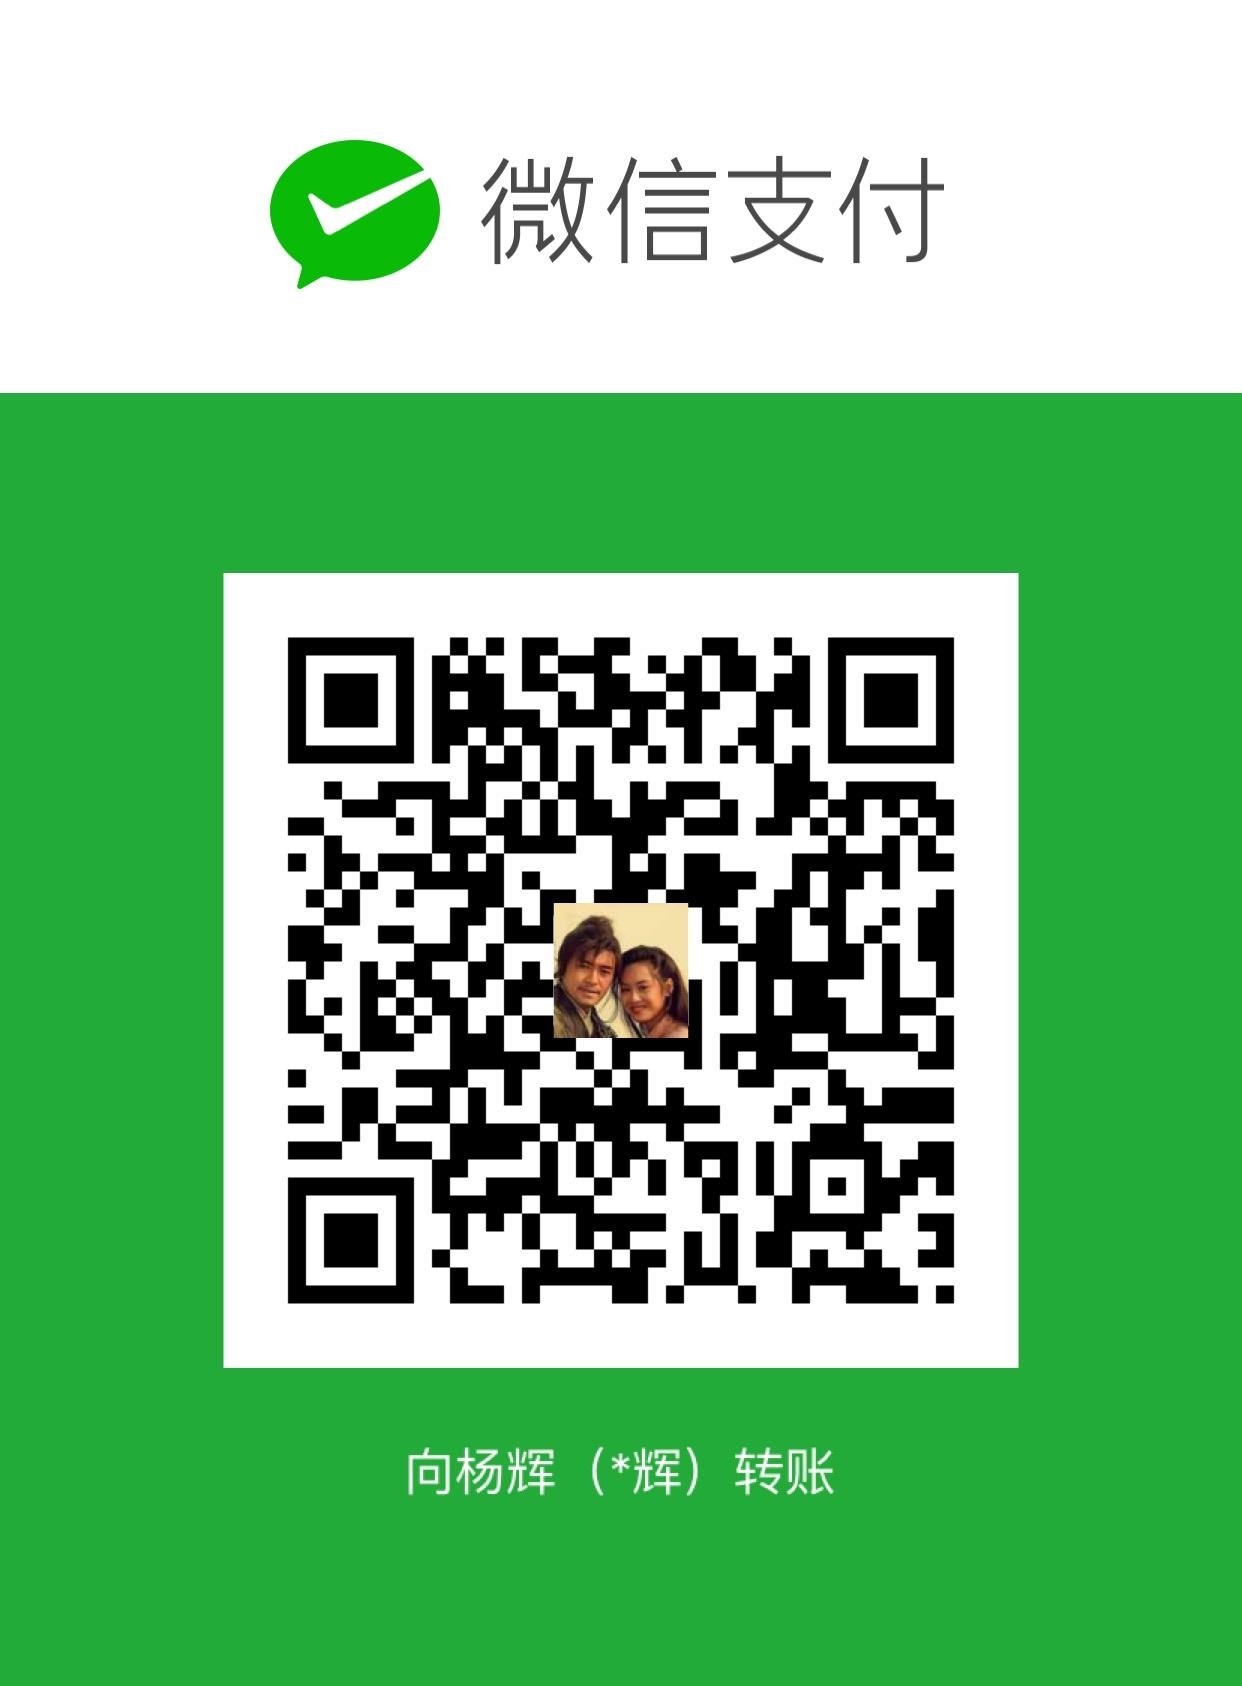 杨辉 WeChat Pay